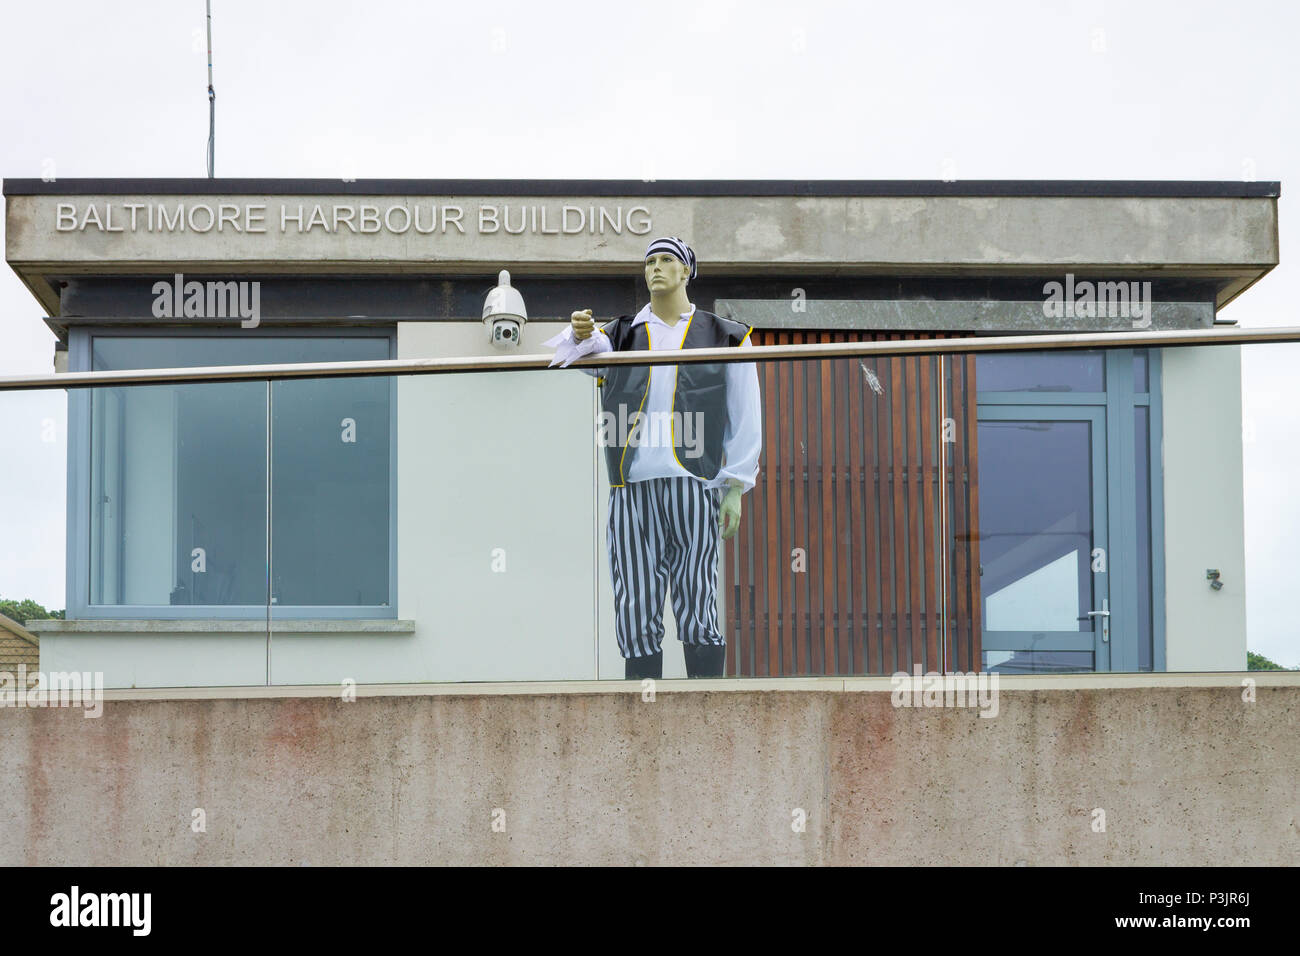 pirate-overlooking-the-harbour-in-baltimore-ireland-part-of-pirate-week-the-dummy-in-pirates-costume-stands-guard-outside-the-harbour-offices-P3JR6J.jpg